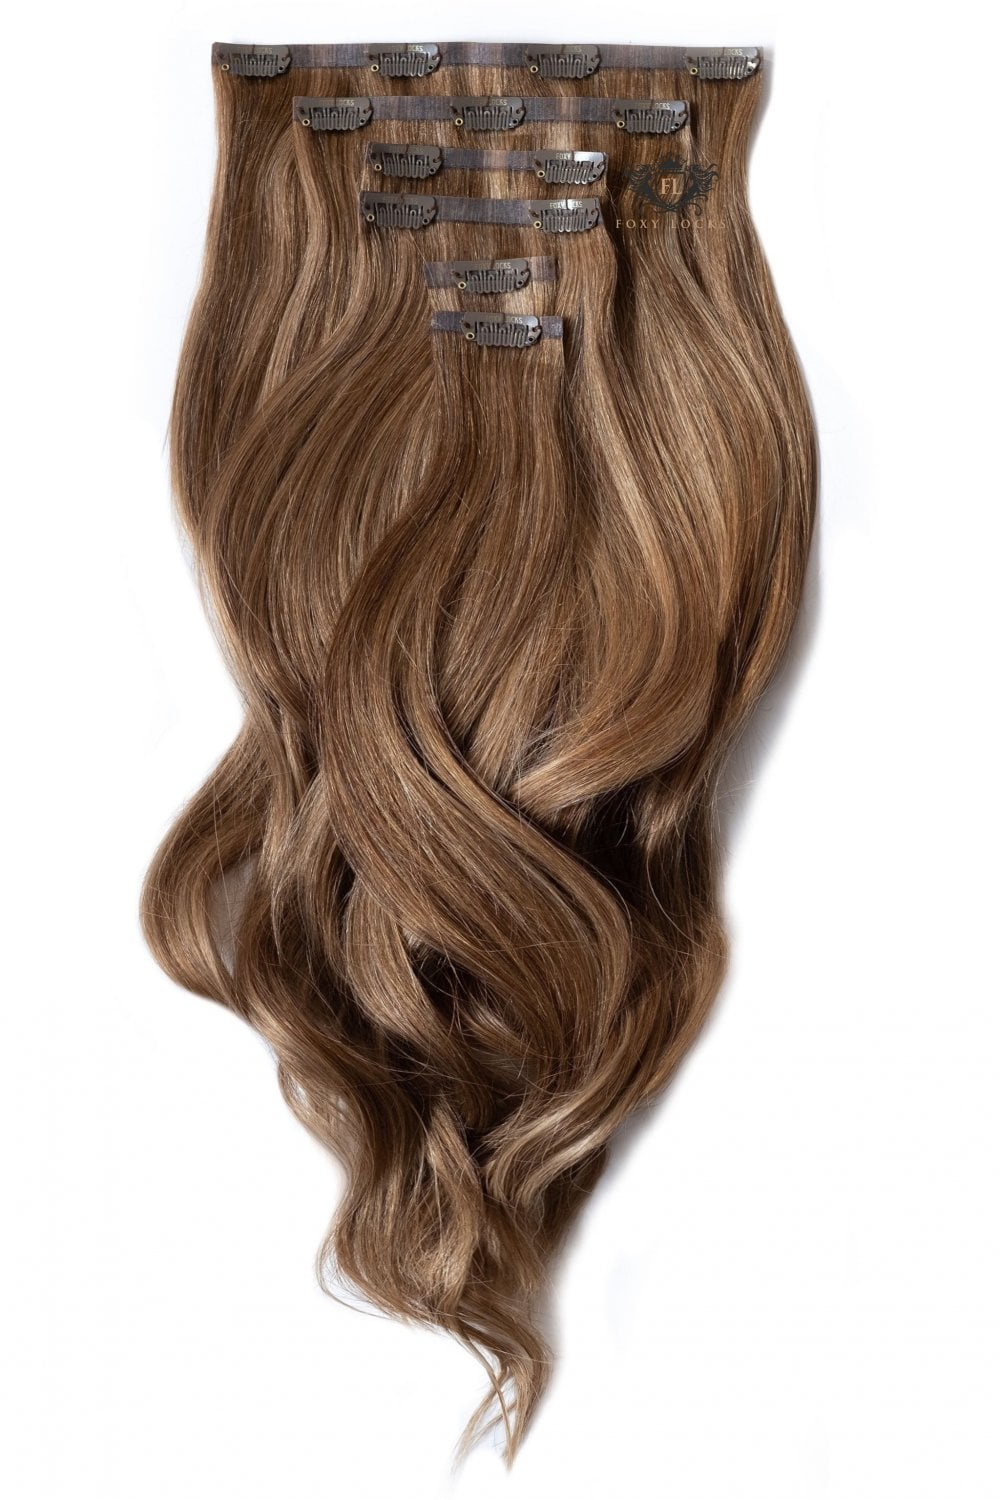 Sunkissed Highlights Superior22 Seamless Clip In Hair Extensions 230g